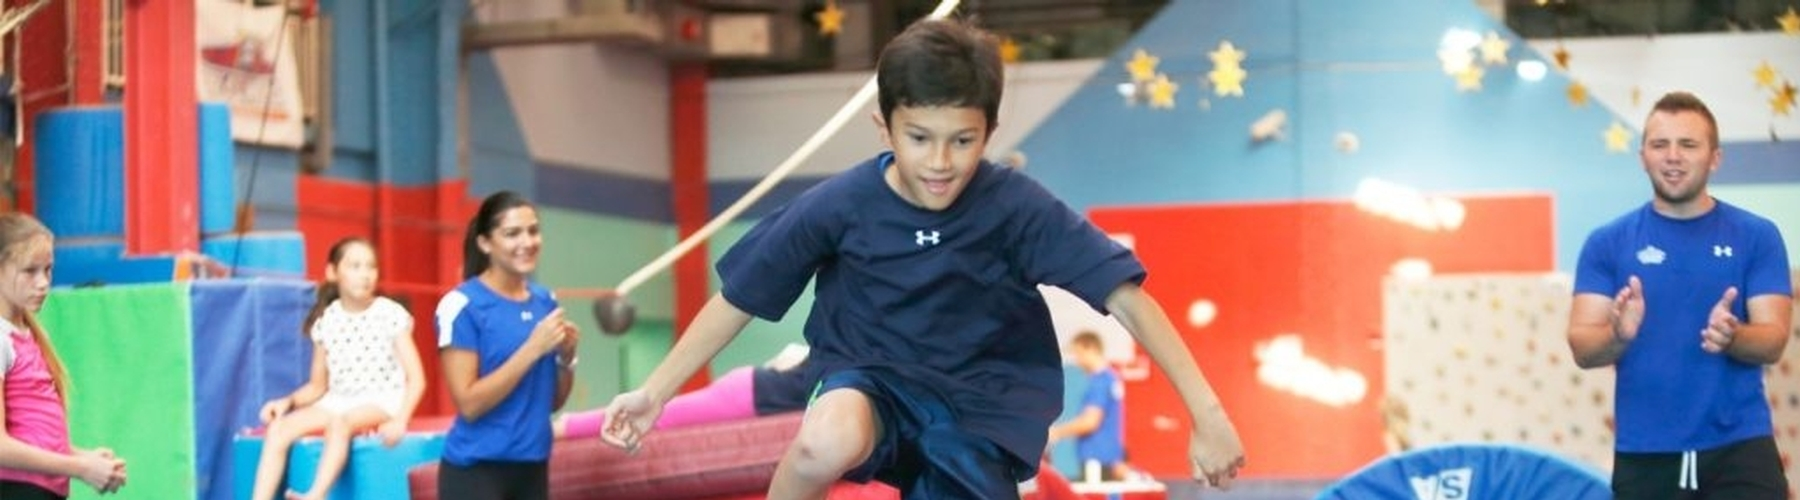 Parkour Classes for Kids in New York City: Freerunning, and Ninja Skills